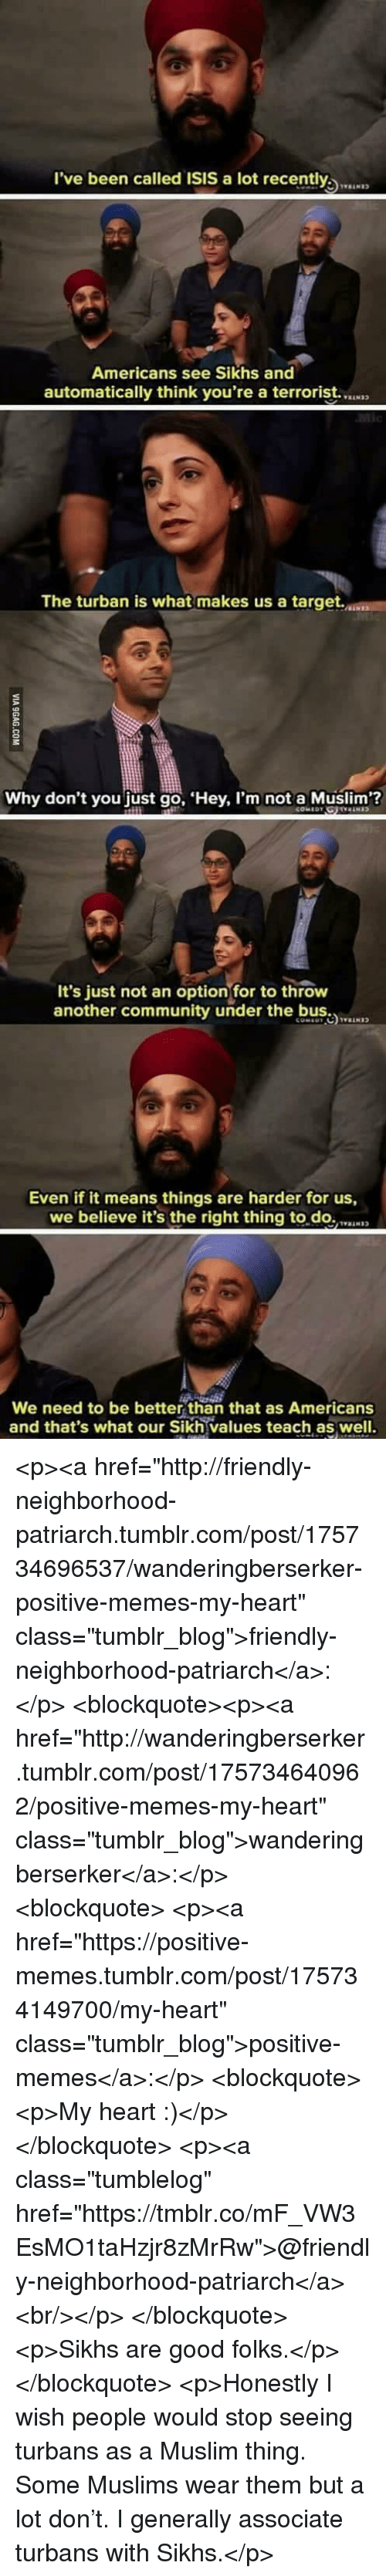 """Community, Isis, and Memes: l've been called ISIS a lot recently  Americans see Sikhs and  automatically think you're a terrorist.  The turban is what makes us a target.  Why don't you just go, Hey, I'm not a Muslim?  It's just not an optionfor to throw  another community under the b  Even if it means things are harder for us,  we believe it's the right thing to.do.N  We need to be better than that as Americans  and that's what our Sikh values teach as well. <p><a href=""""http://friendly-neighborhood-patriarch.tumblr.com/post/175734696537/wanderingberserker-positive-memes-my-heart"""" class=""""tumblr_blog"""">friendly-neighborhood-patriarch</a>:</p>  <blockquote><p><a href=""""http://wanderingberserker.tumblr.com/post/175734640962/positive-memes-my-heart"""" class=""""tumblr_blog"""">wanderingberserker</a>:</p><blockquote> <p><a href=""""https://positive-memes.tumblr.com/post/175734149700/my-heart"""" class=""""tumblr_blog"""">positive-memes</a>:</p> <blockquote><p>My heart :)</p></blockquote> <p><a class=""""tumblelog"""" href=""""https://tmblr.co/mF_VW3EsMO1taHzjr8zMrRw"""">@friendly-neighborhood-patriarch</a><br/></p> </blockquote> <p>Sikhs are good folks.</p></blockquote>  <p>Honestly I wish people would stop seeing turbans as a Muslim thing. Some Muslims wear them but a lot don't. I generally associate turbans with Sikhs.</p>"""